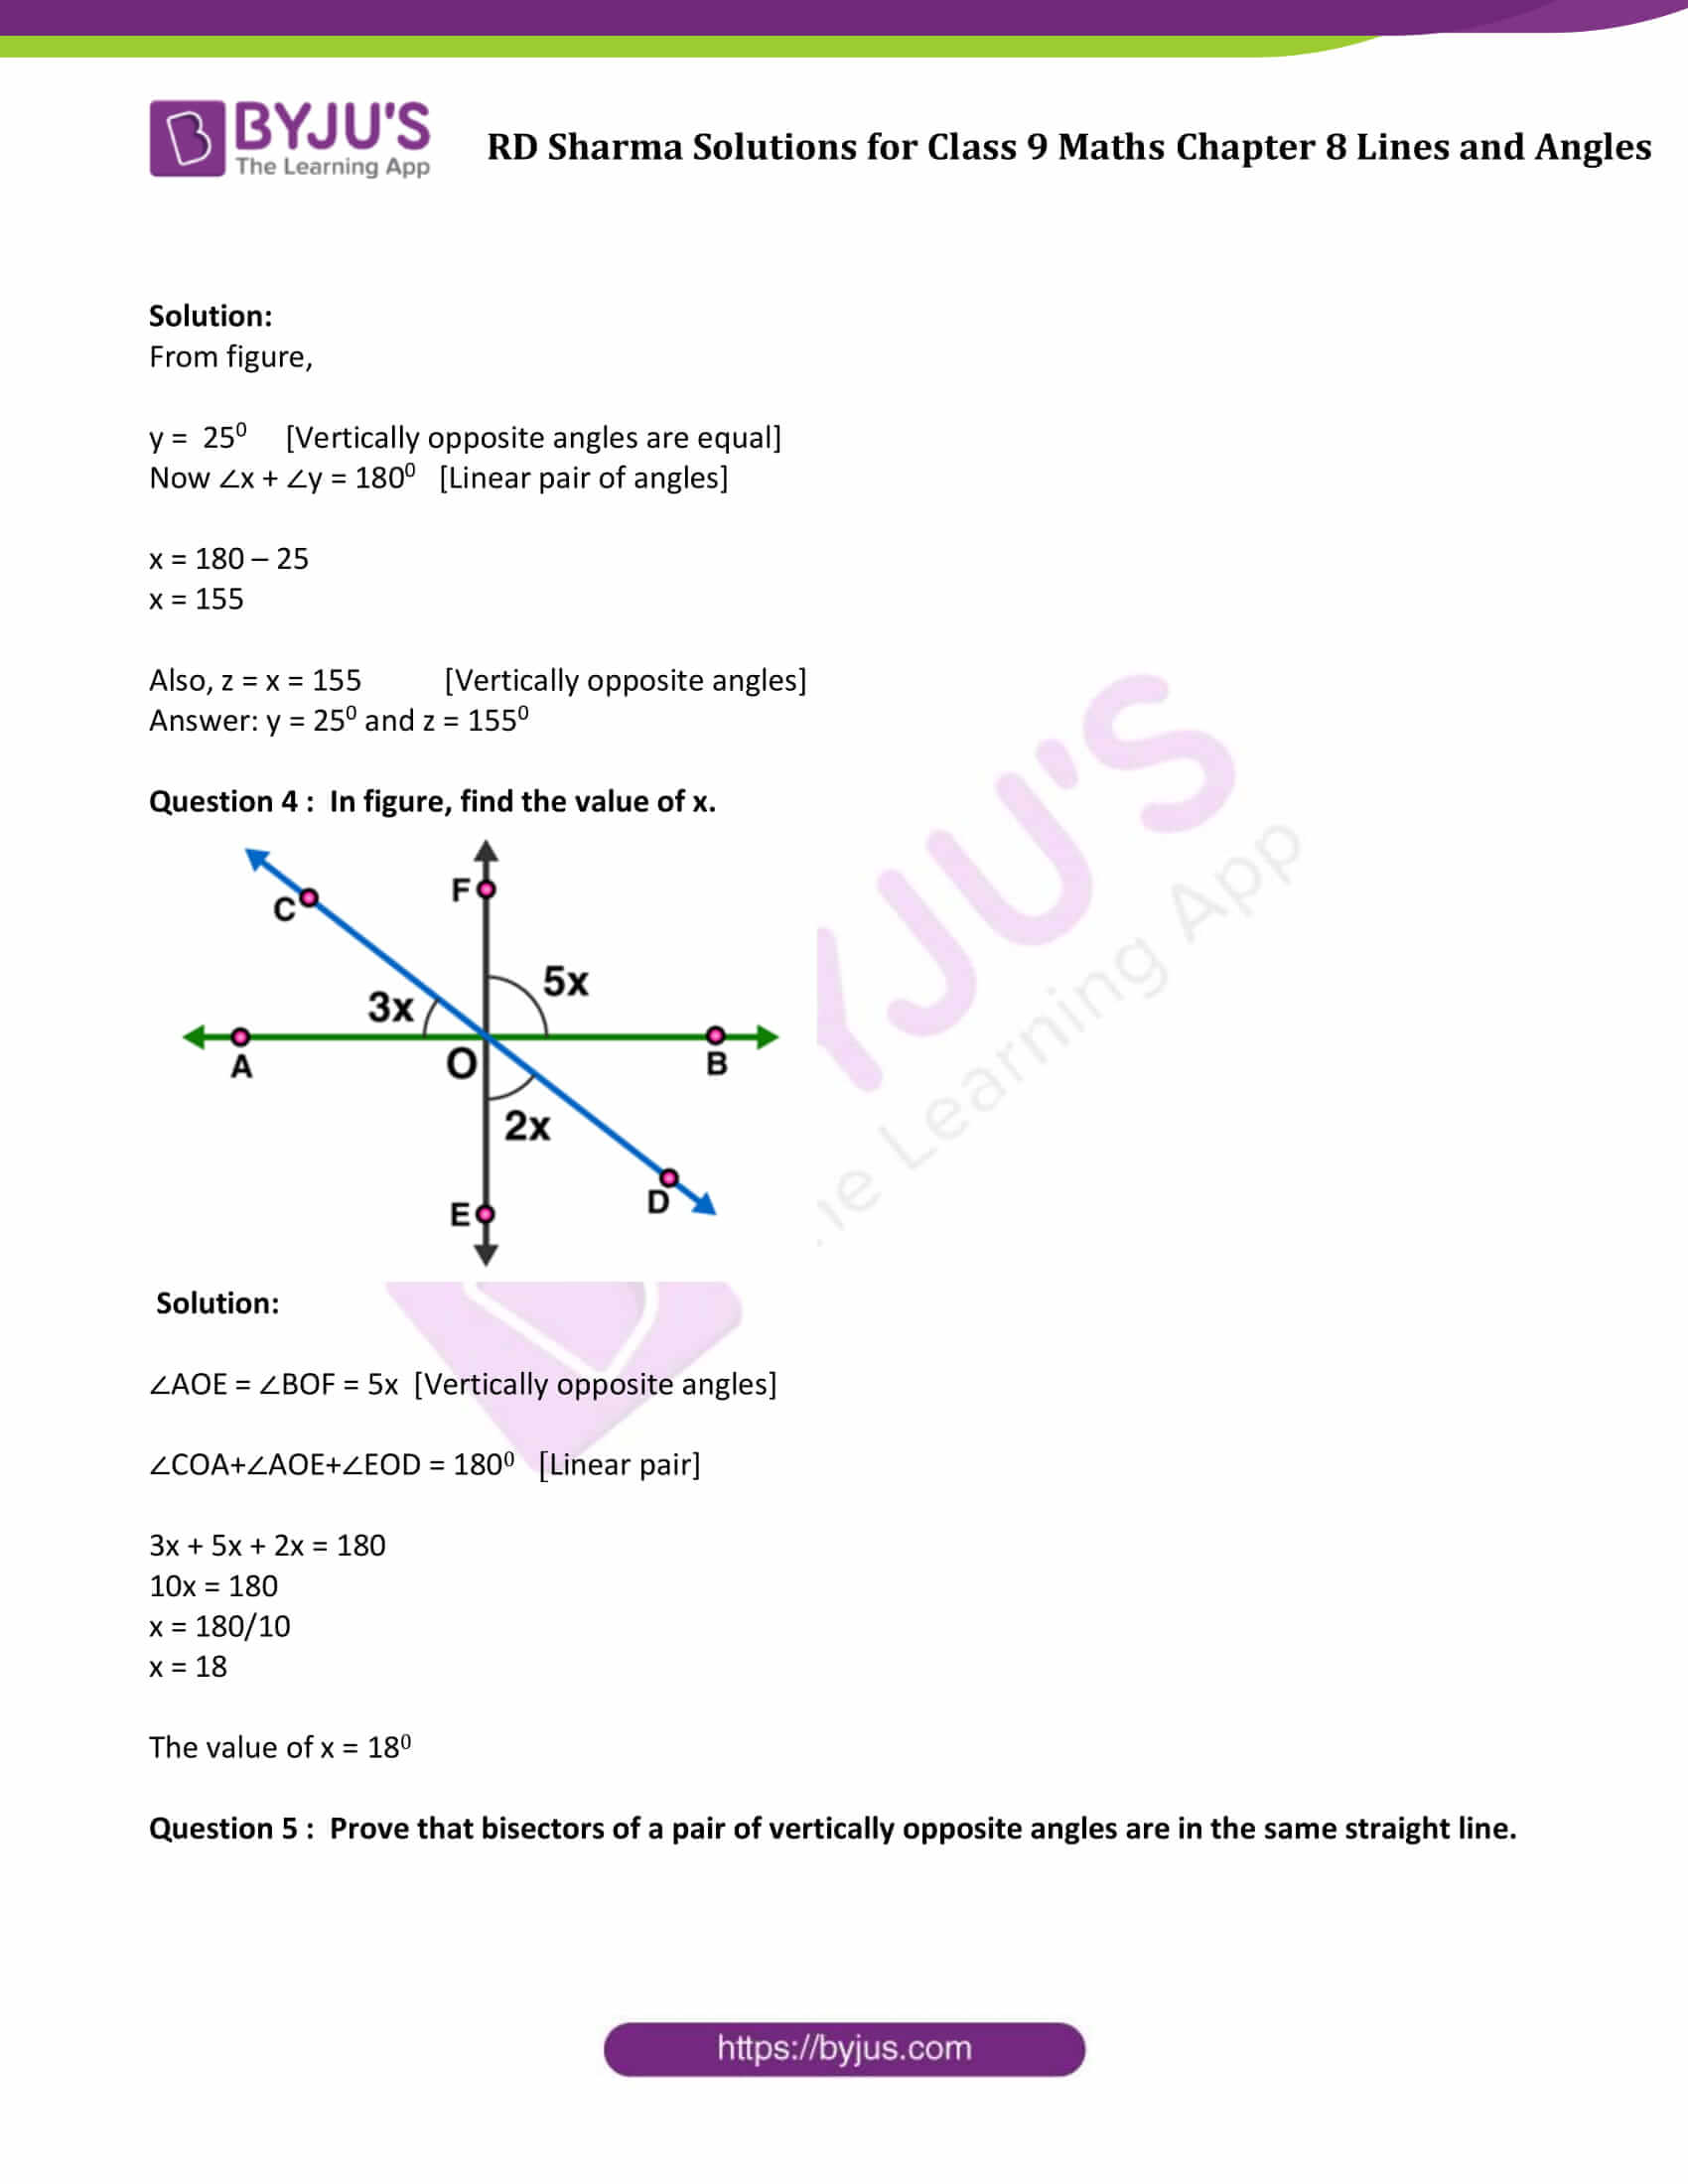 RD Sharma Solution class 9 Maths Chapter 8 Lines and Angles 13